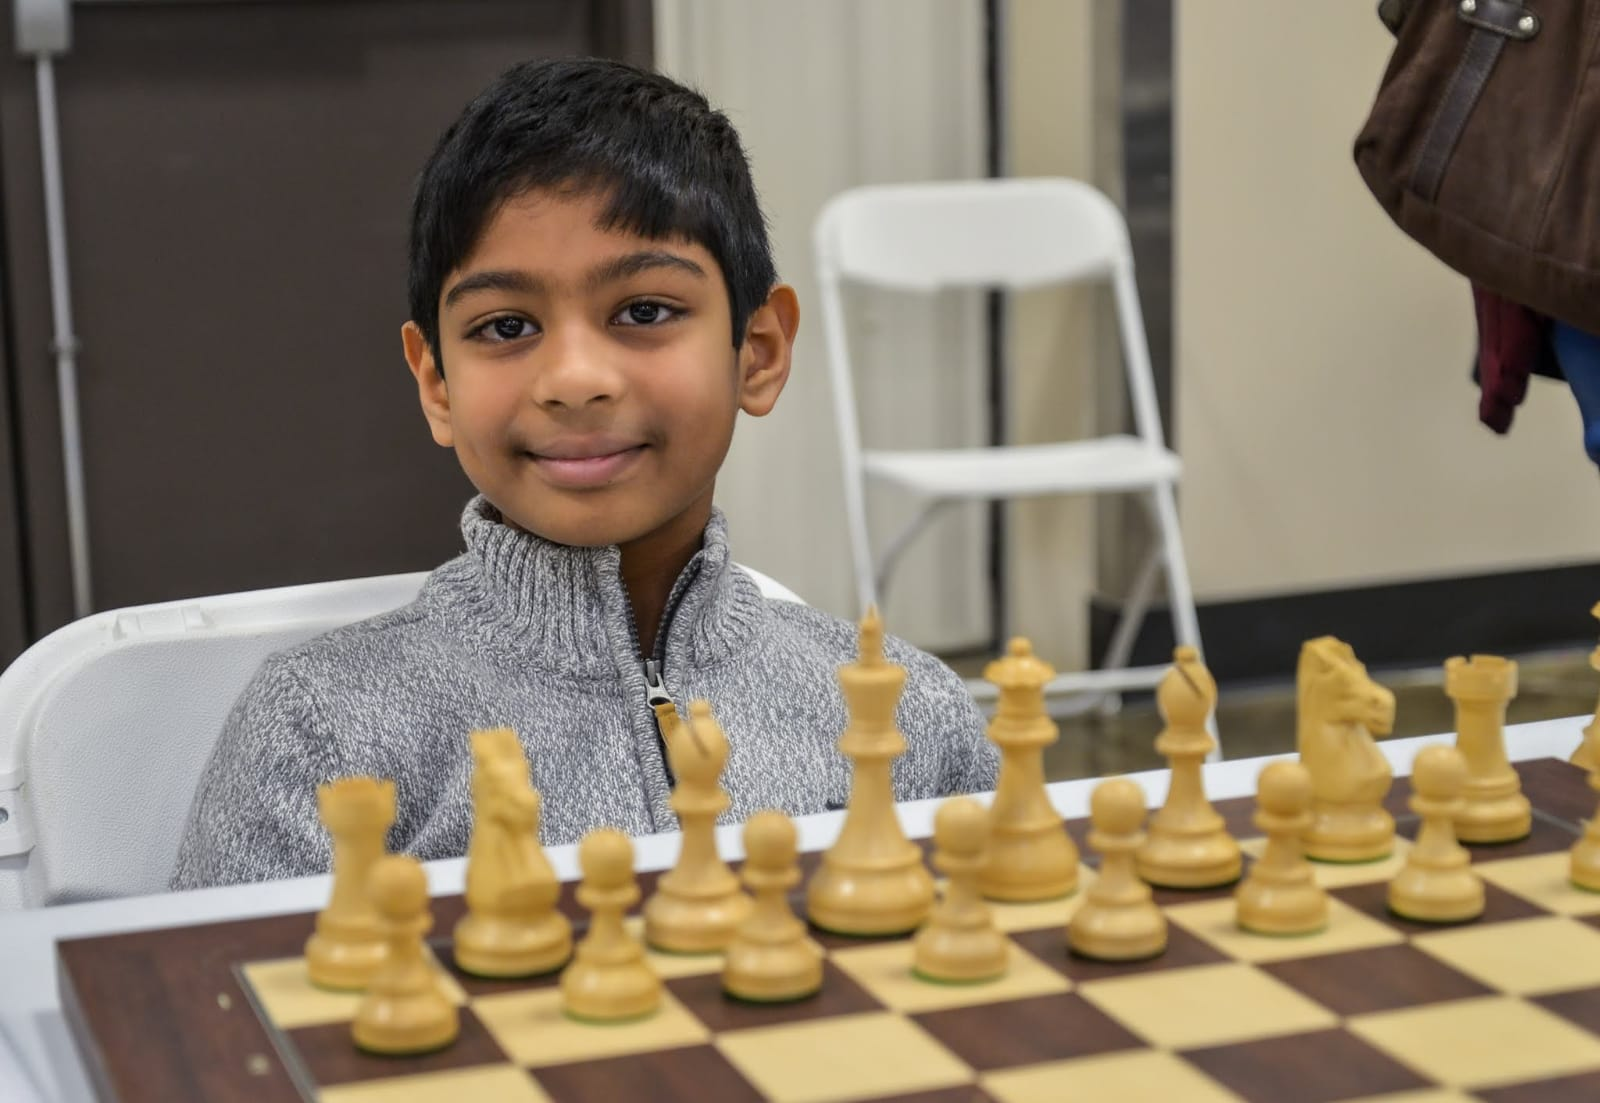 Darshan Clinched the 8th Chess Gurukul Global Inter for US Students